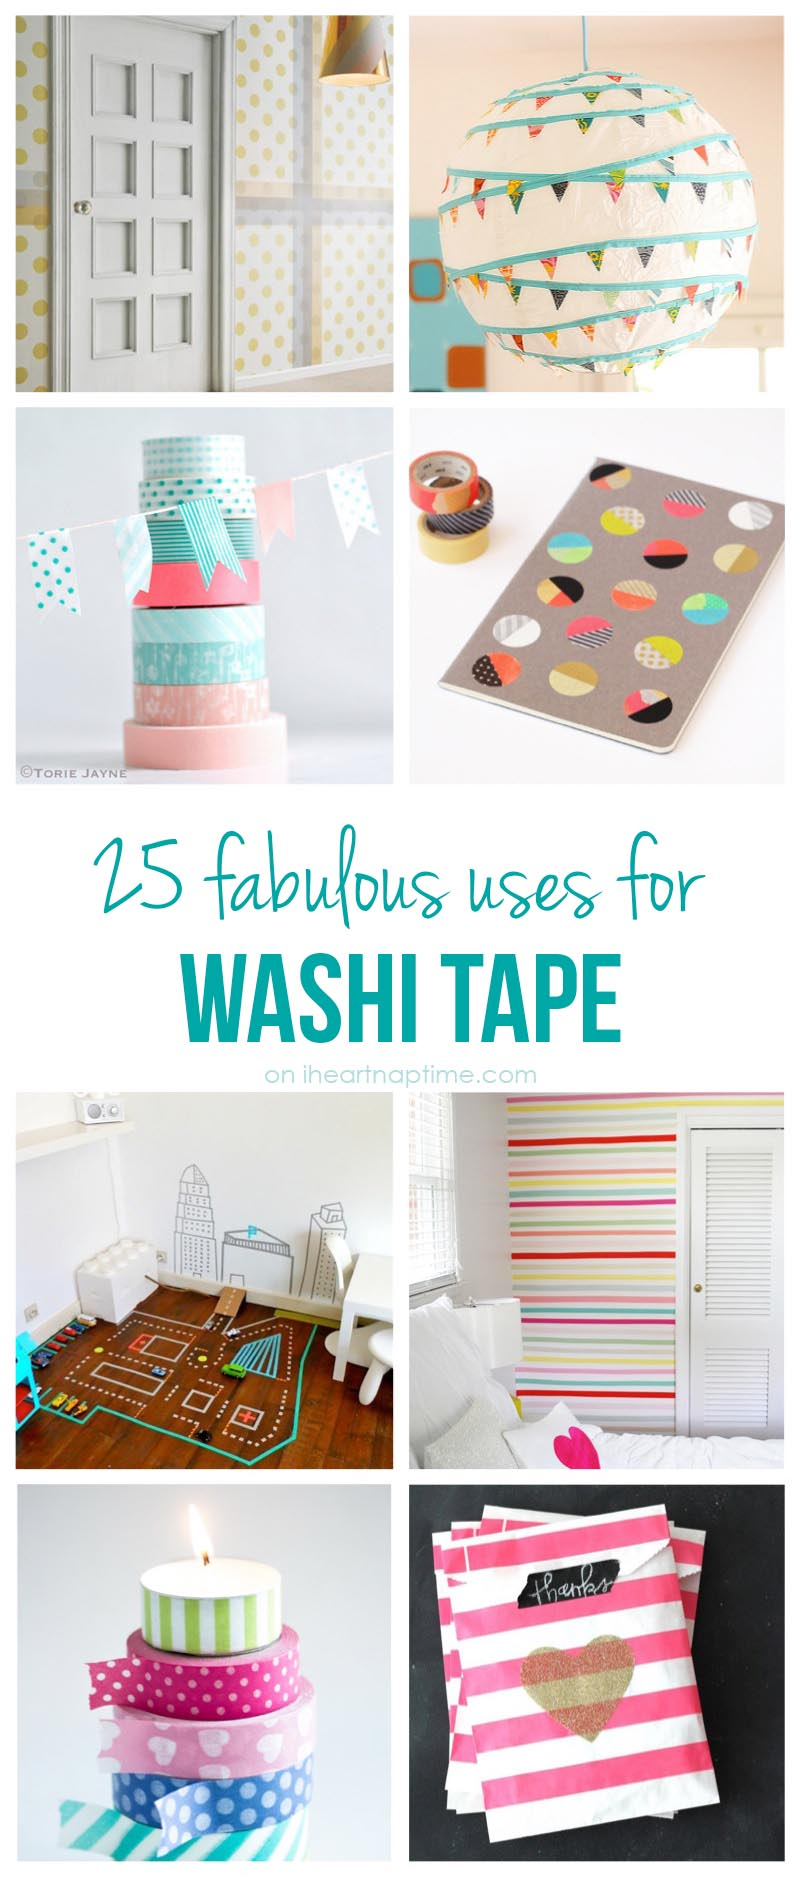 25-fabulous-uses-for-washi-tape